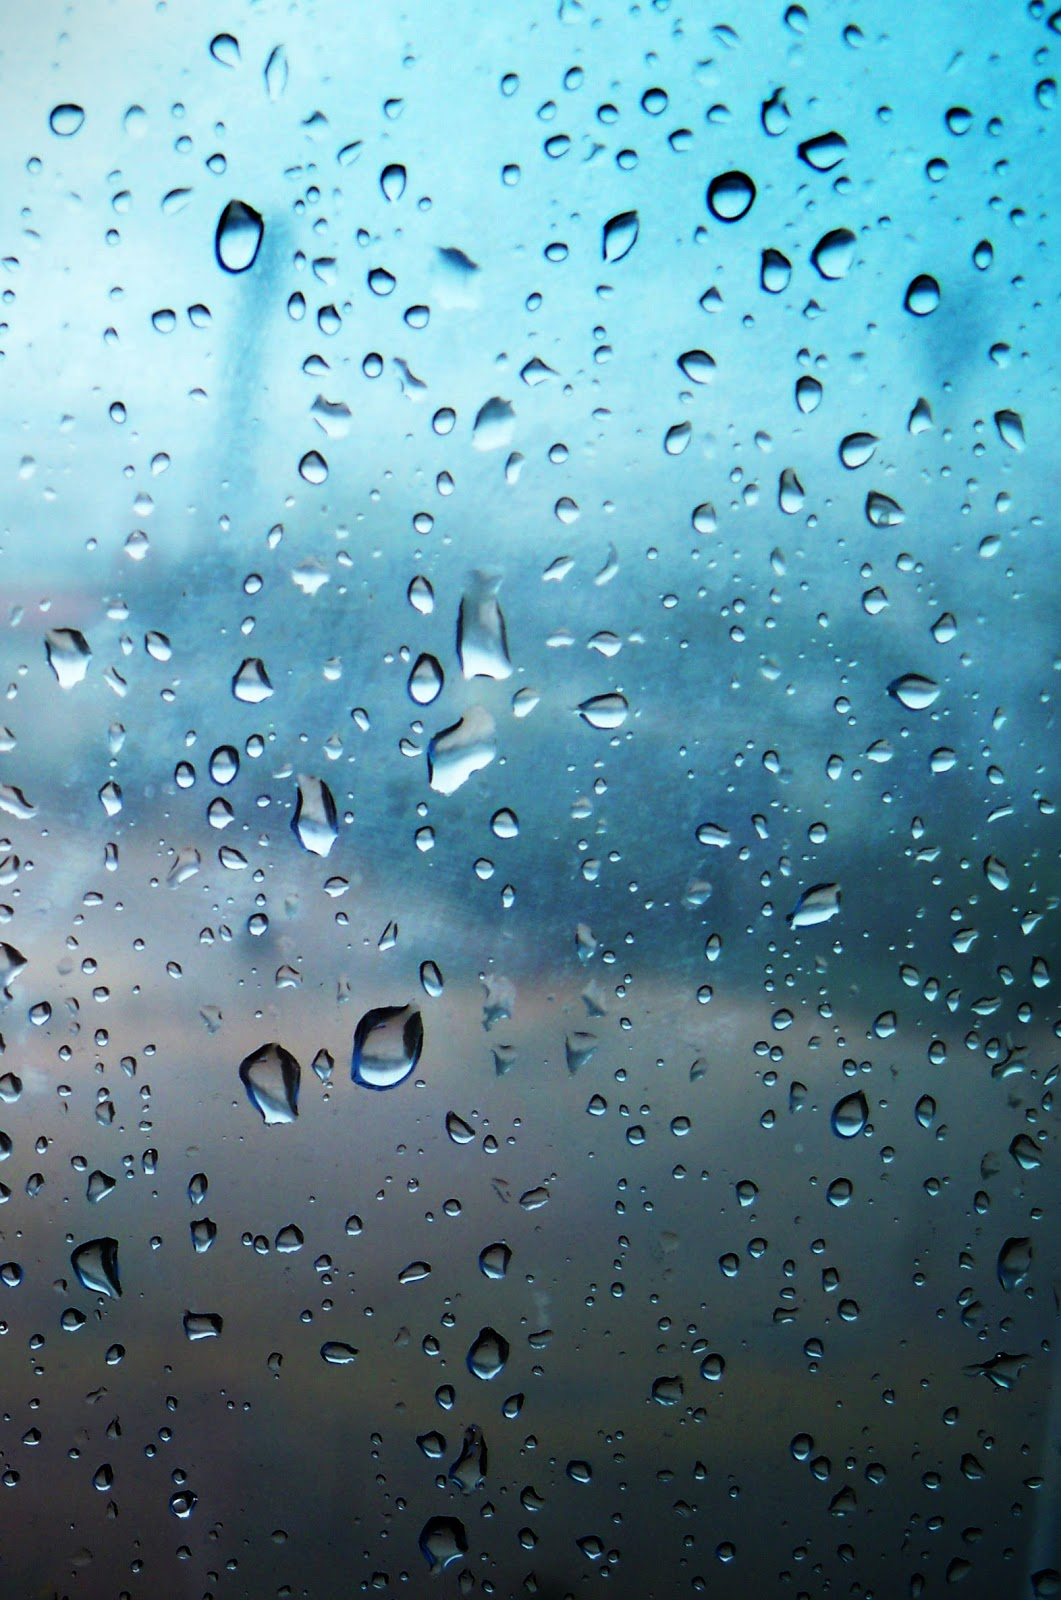 iPhone Wallpapers  iPhone Rain Drop Wallpaper